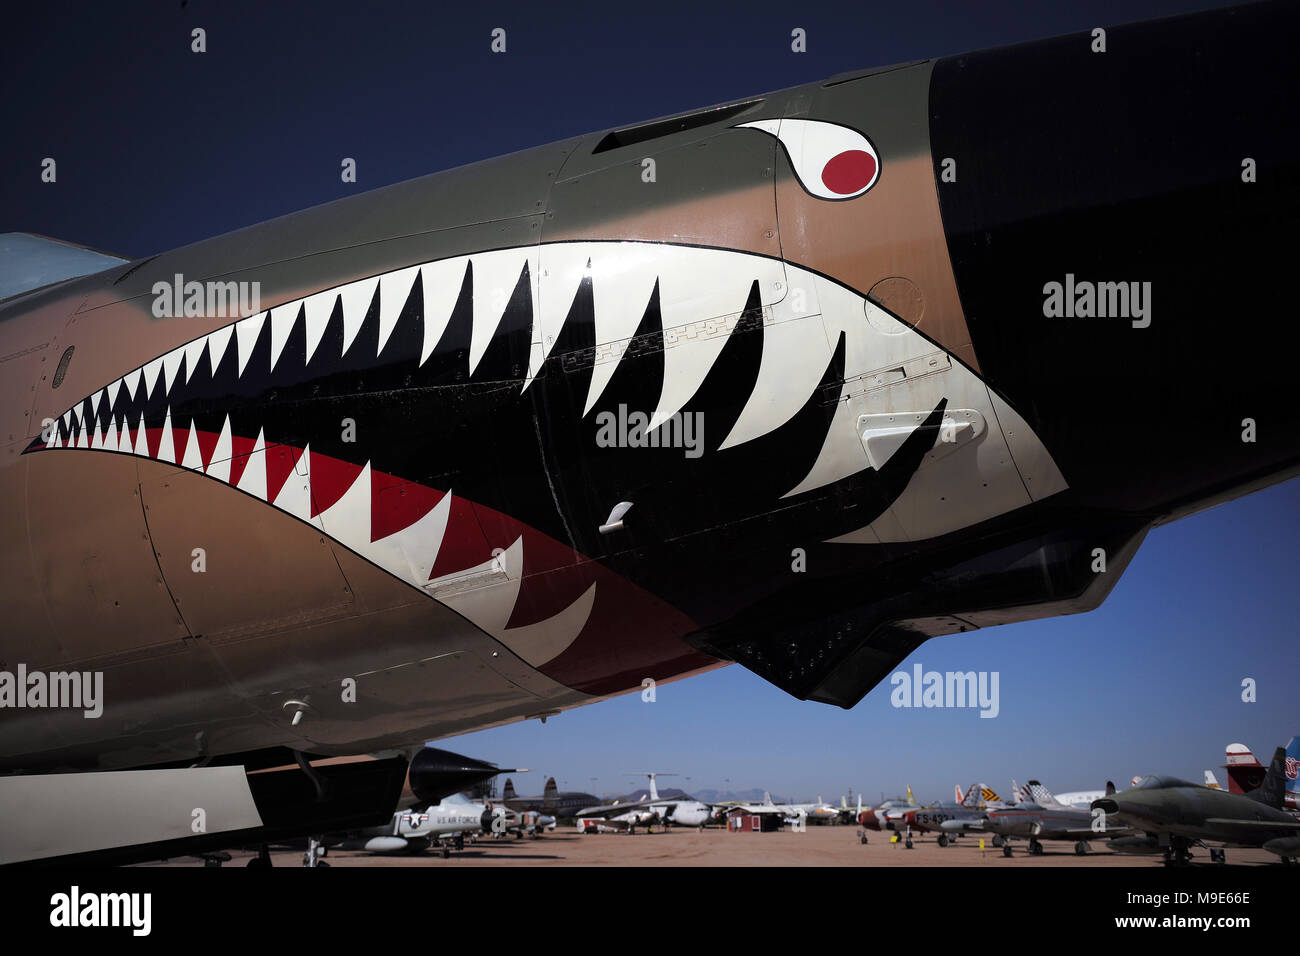 Sharkteeth on a warplane at the Pima Air Museum - Stock Image